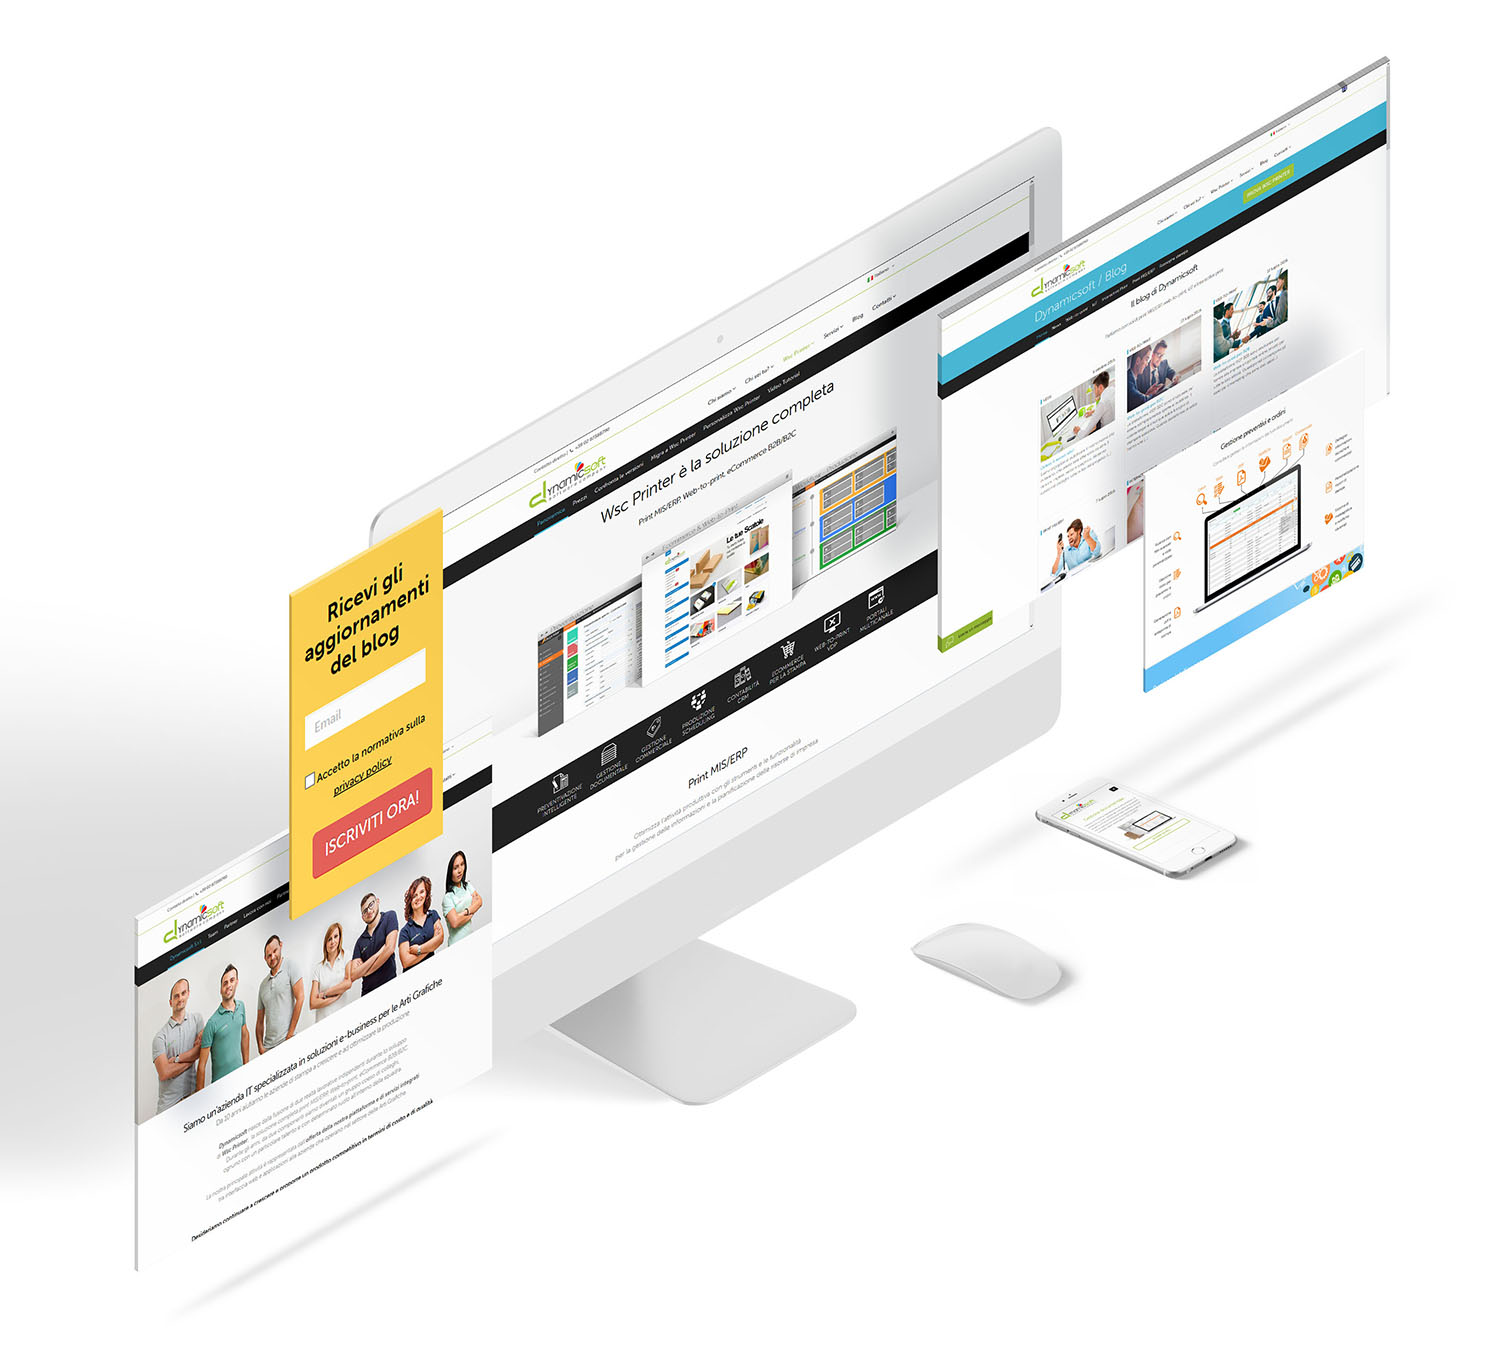 dynamicsoft_new_site2